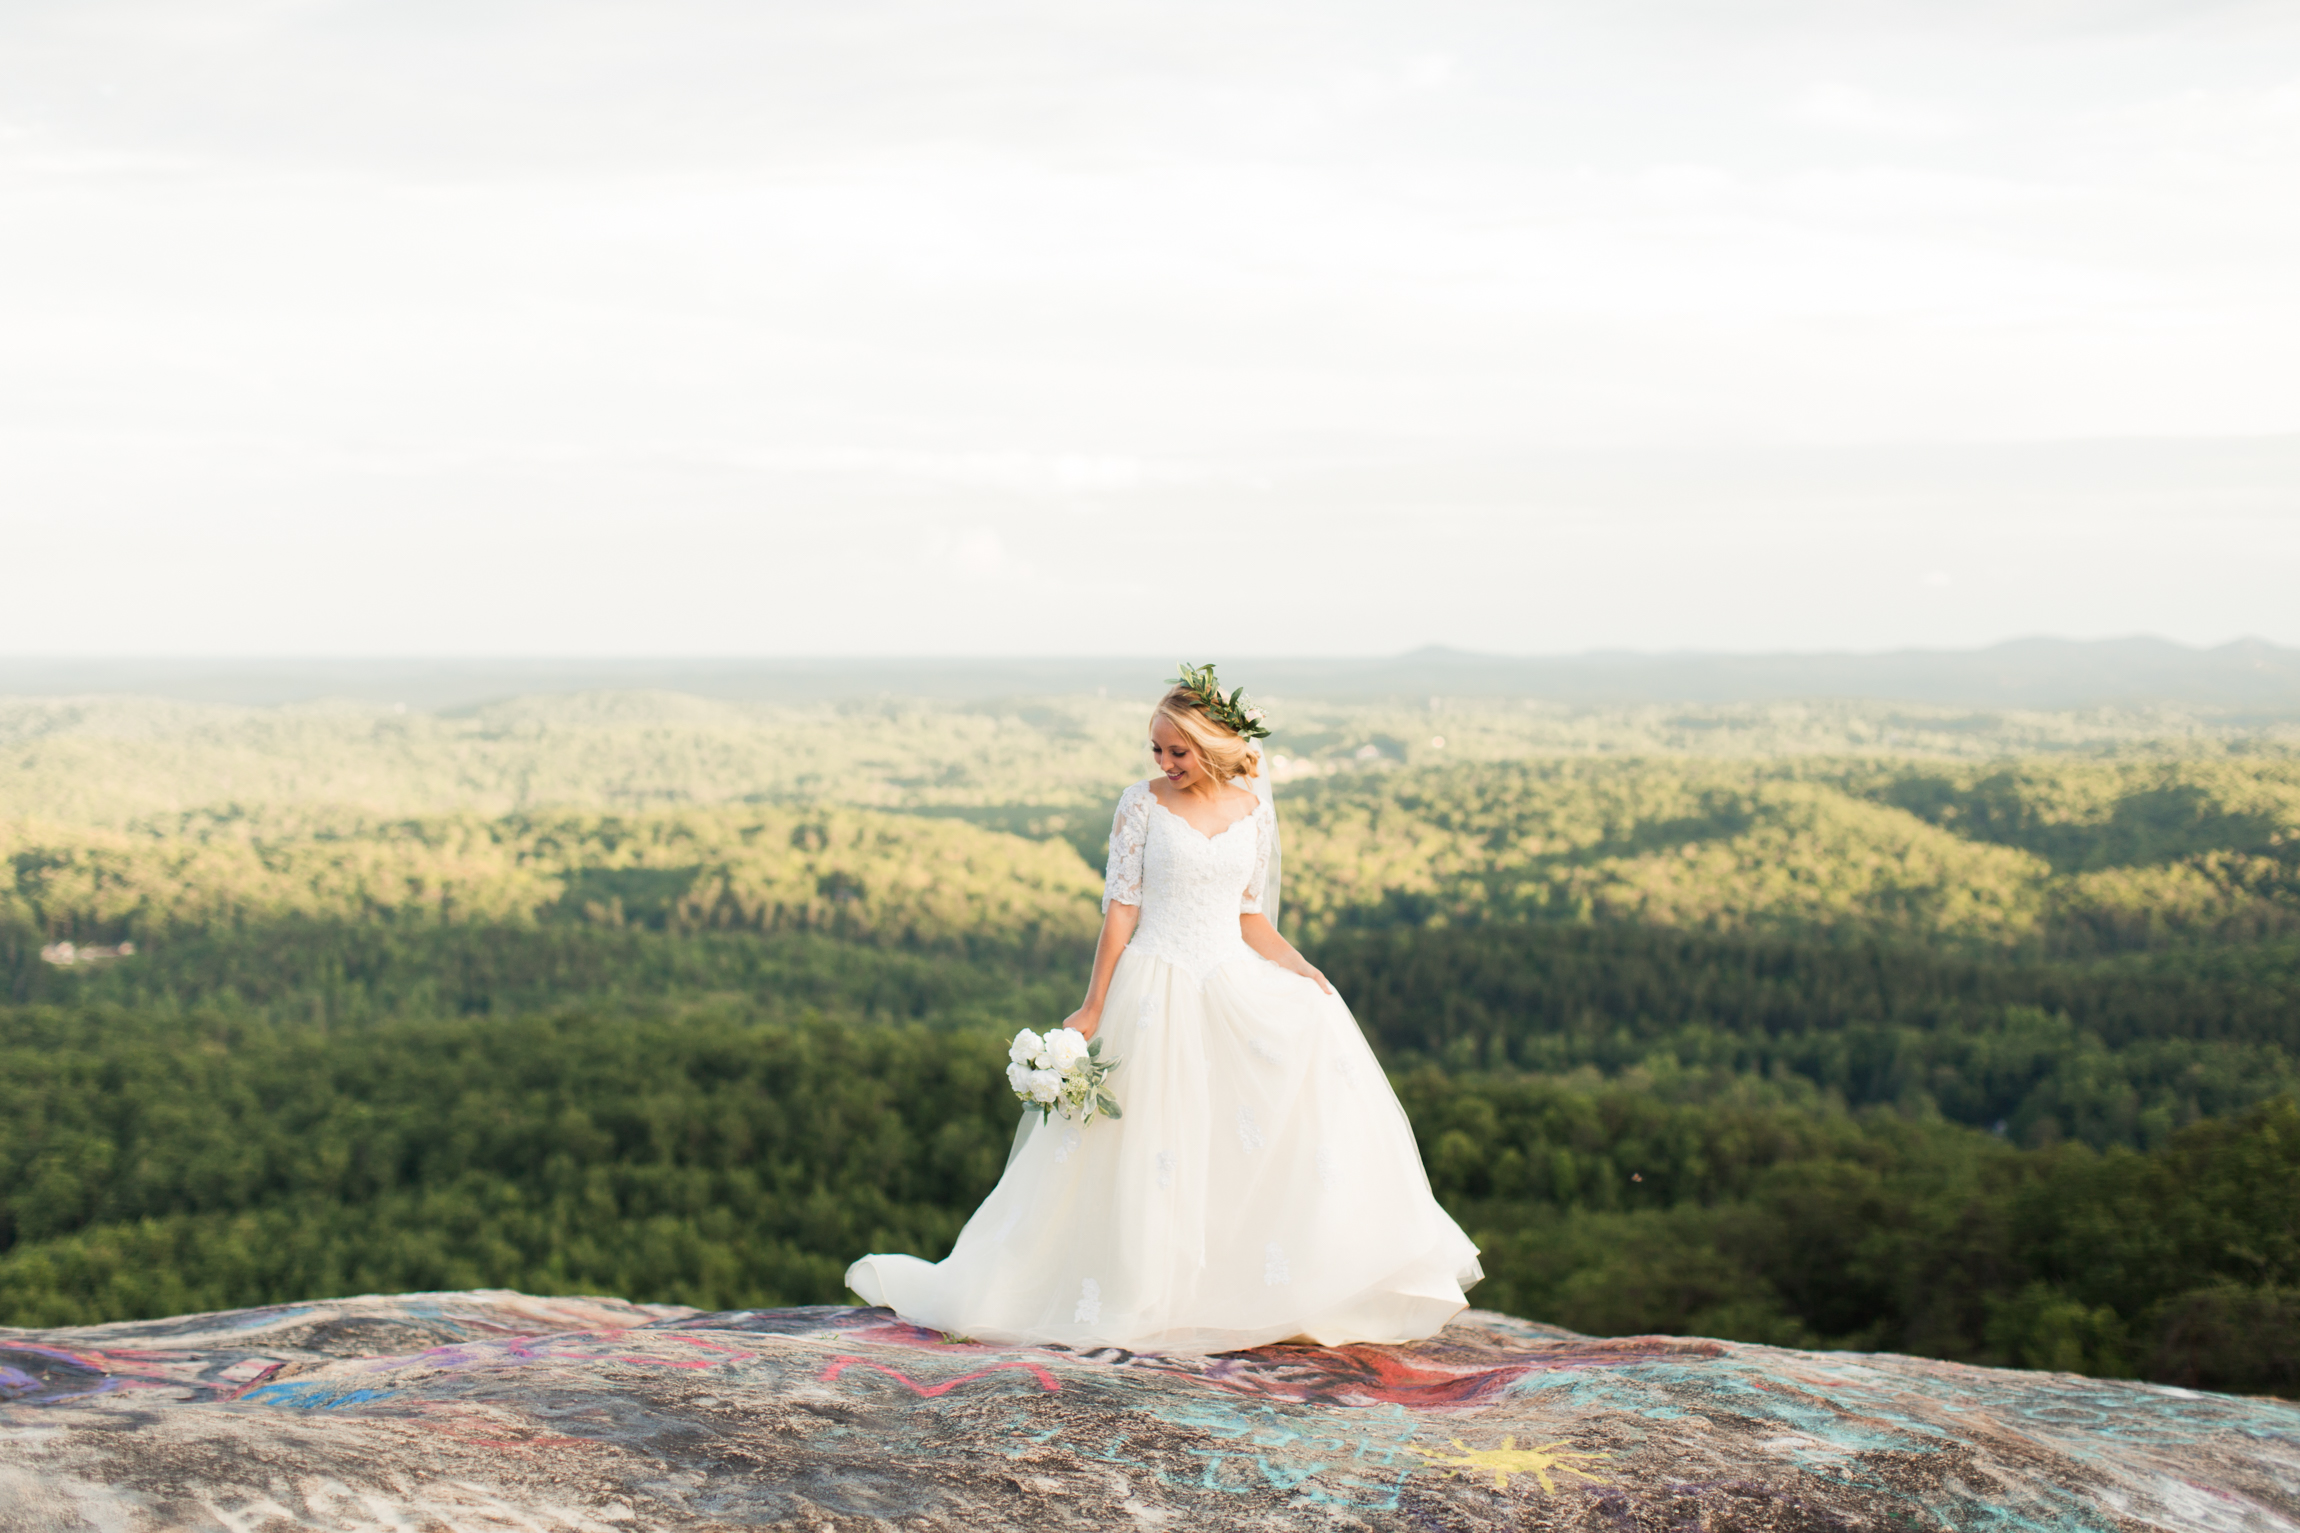 Lauren-Bald Rock South Carolina Bridal Photos-0531.jpg